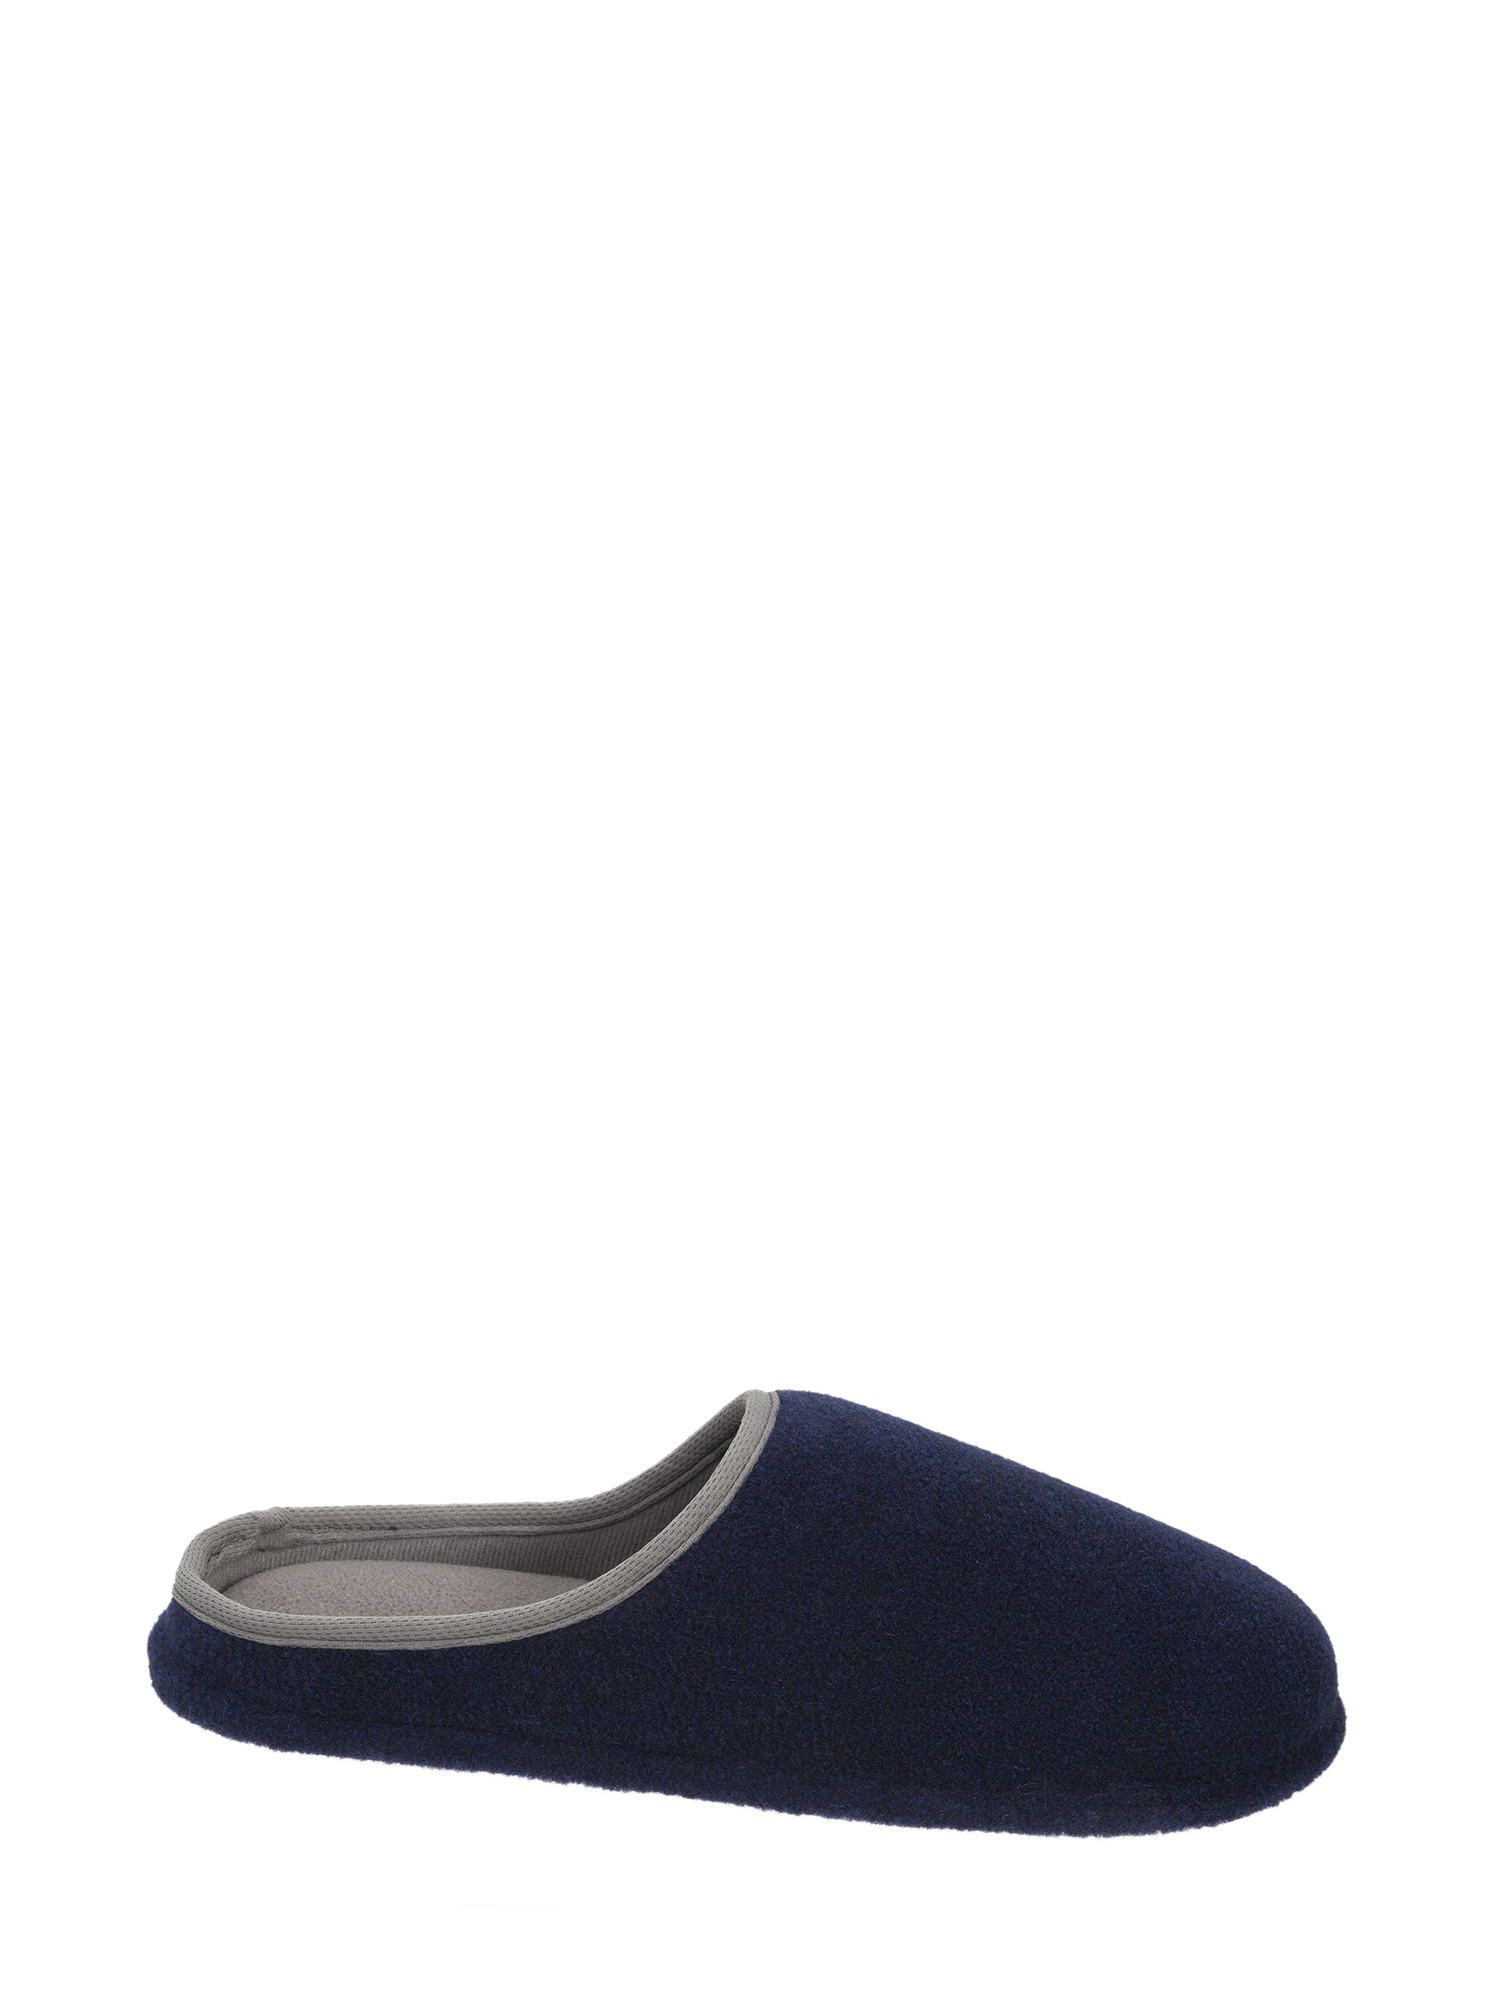 DF by Dearfoams Men's Felt Clog Slipper